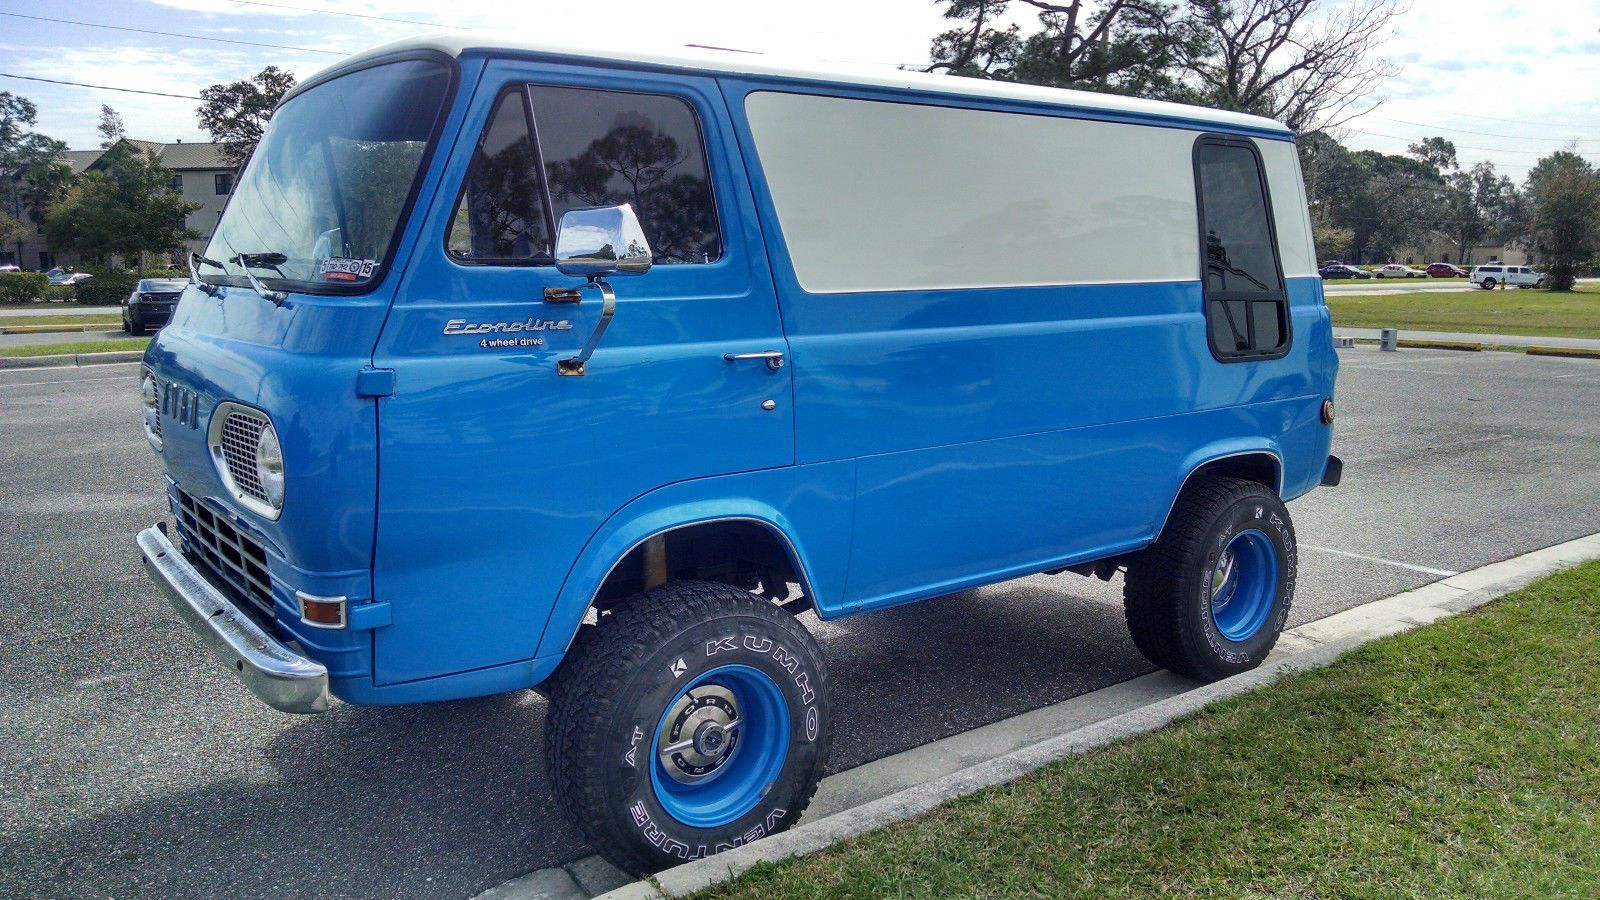 Details About 1967 Ford E-Series Van